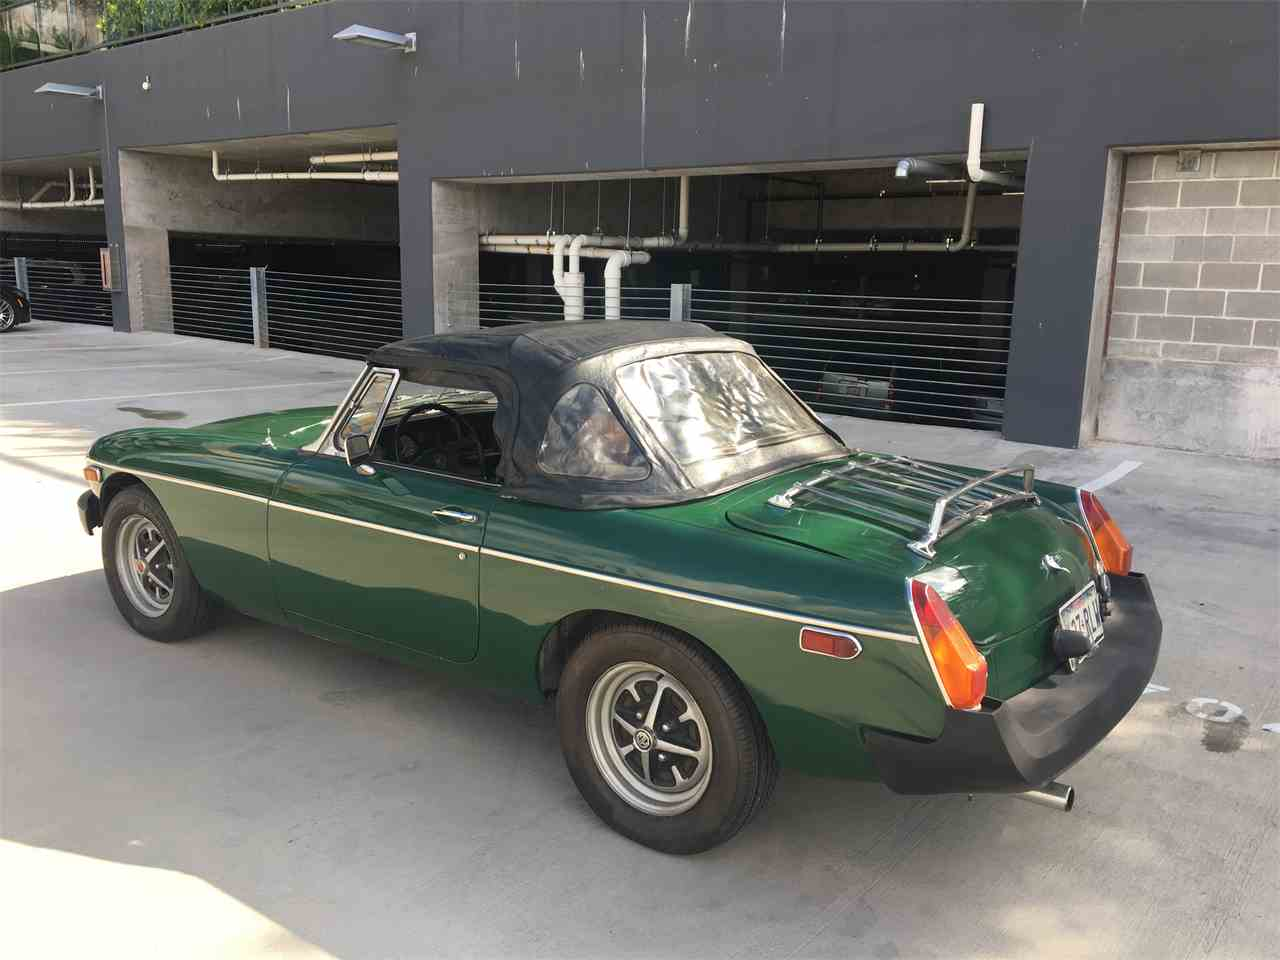 Large Picture of '77 MG MGB - $3,500.00 Offered by a Private Seller - LU57